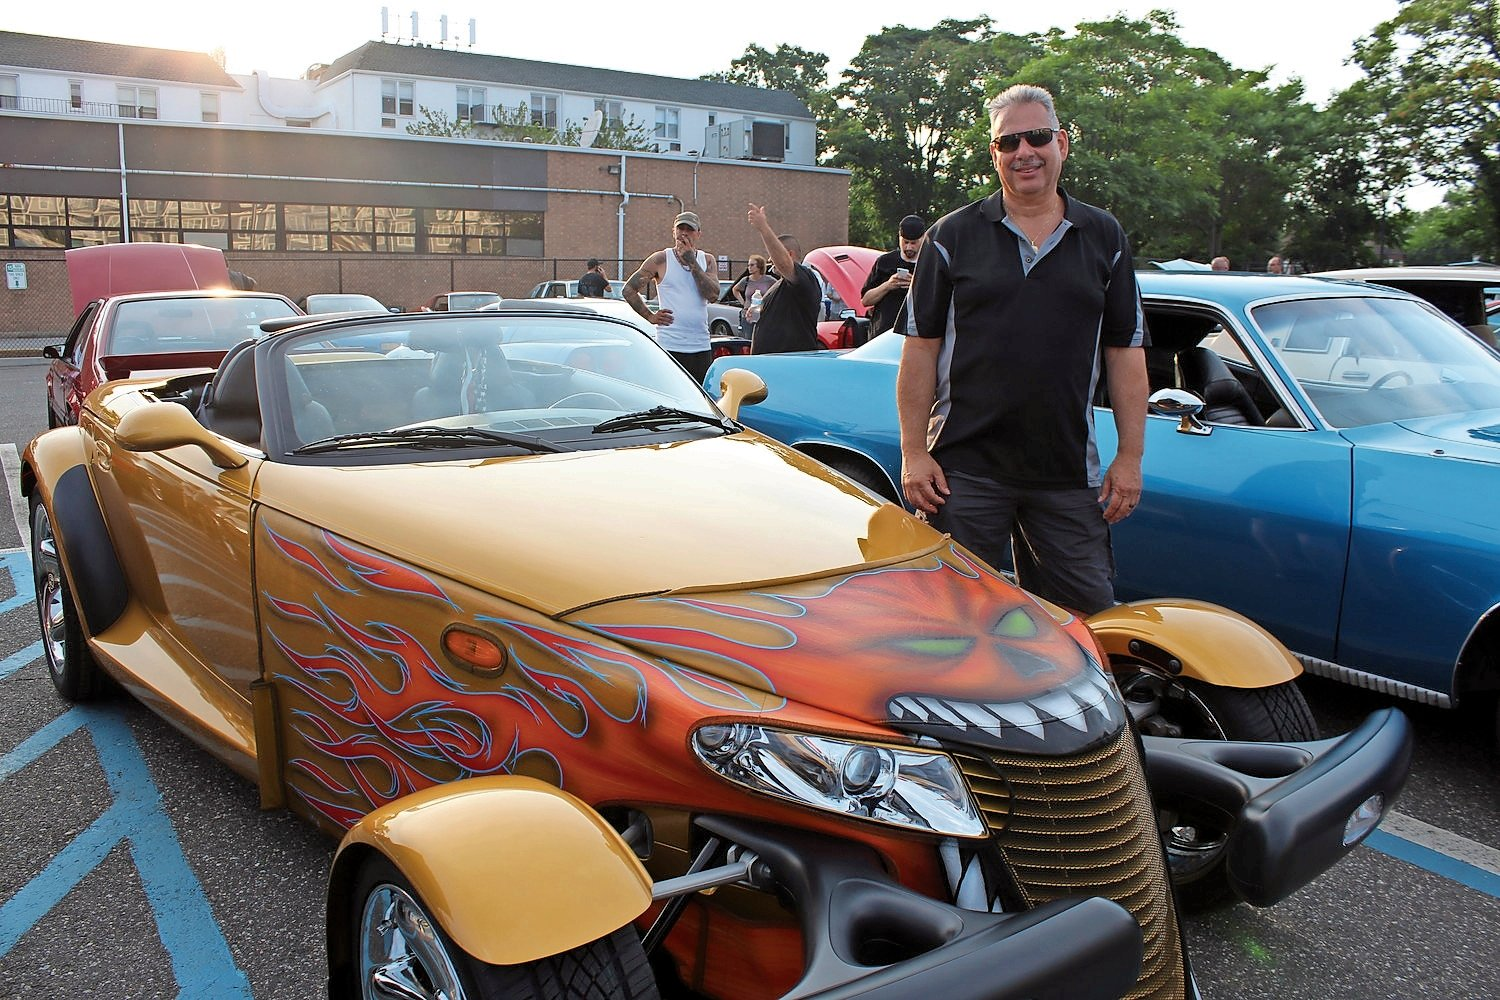 Franklin Square resident Mike Abriuzzo brought a 2002 limited-production Toyota Corolla to the car show last year in East Rockaway.